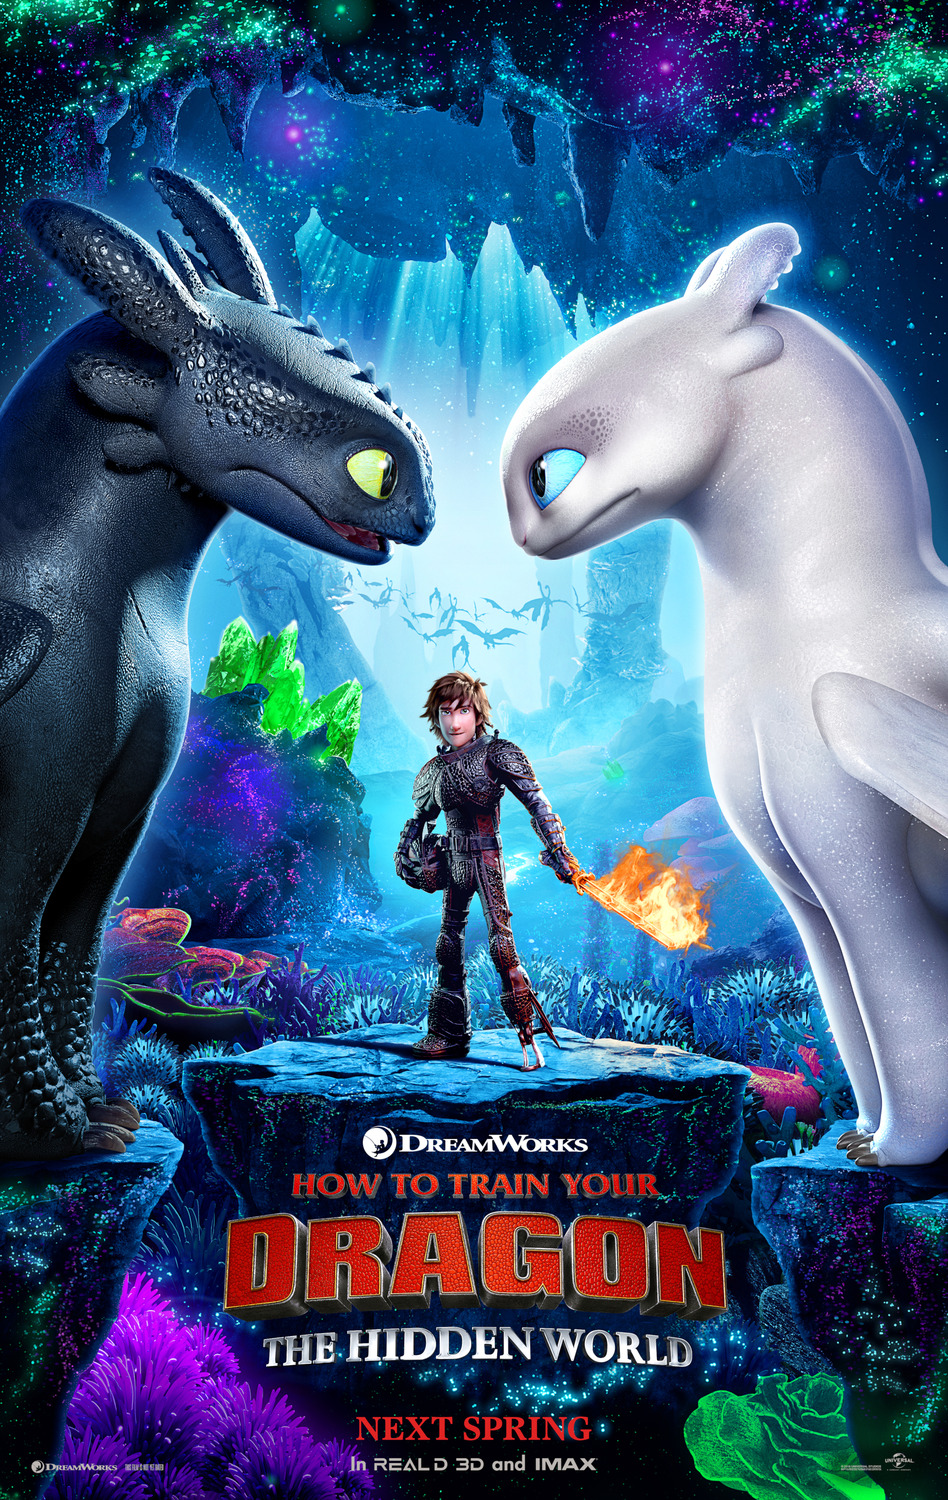 HOW TO TRAIN YOUR DRAGON: THE HIDDEN WORLD (PG) Movie Poster